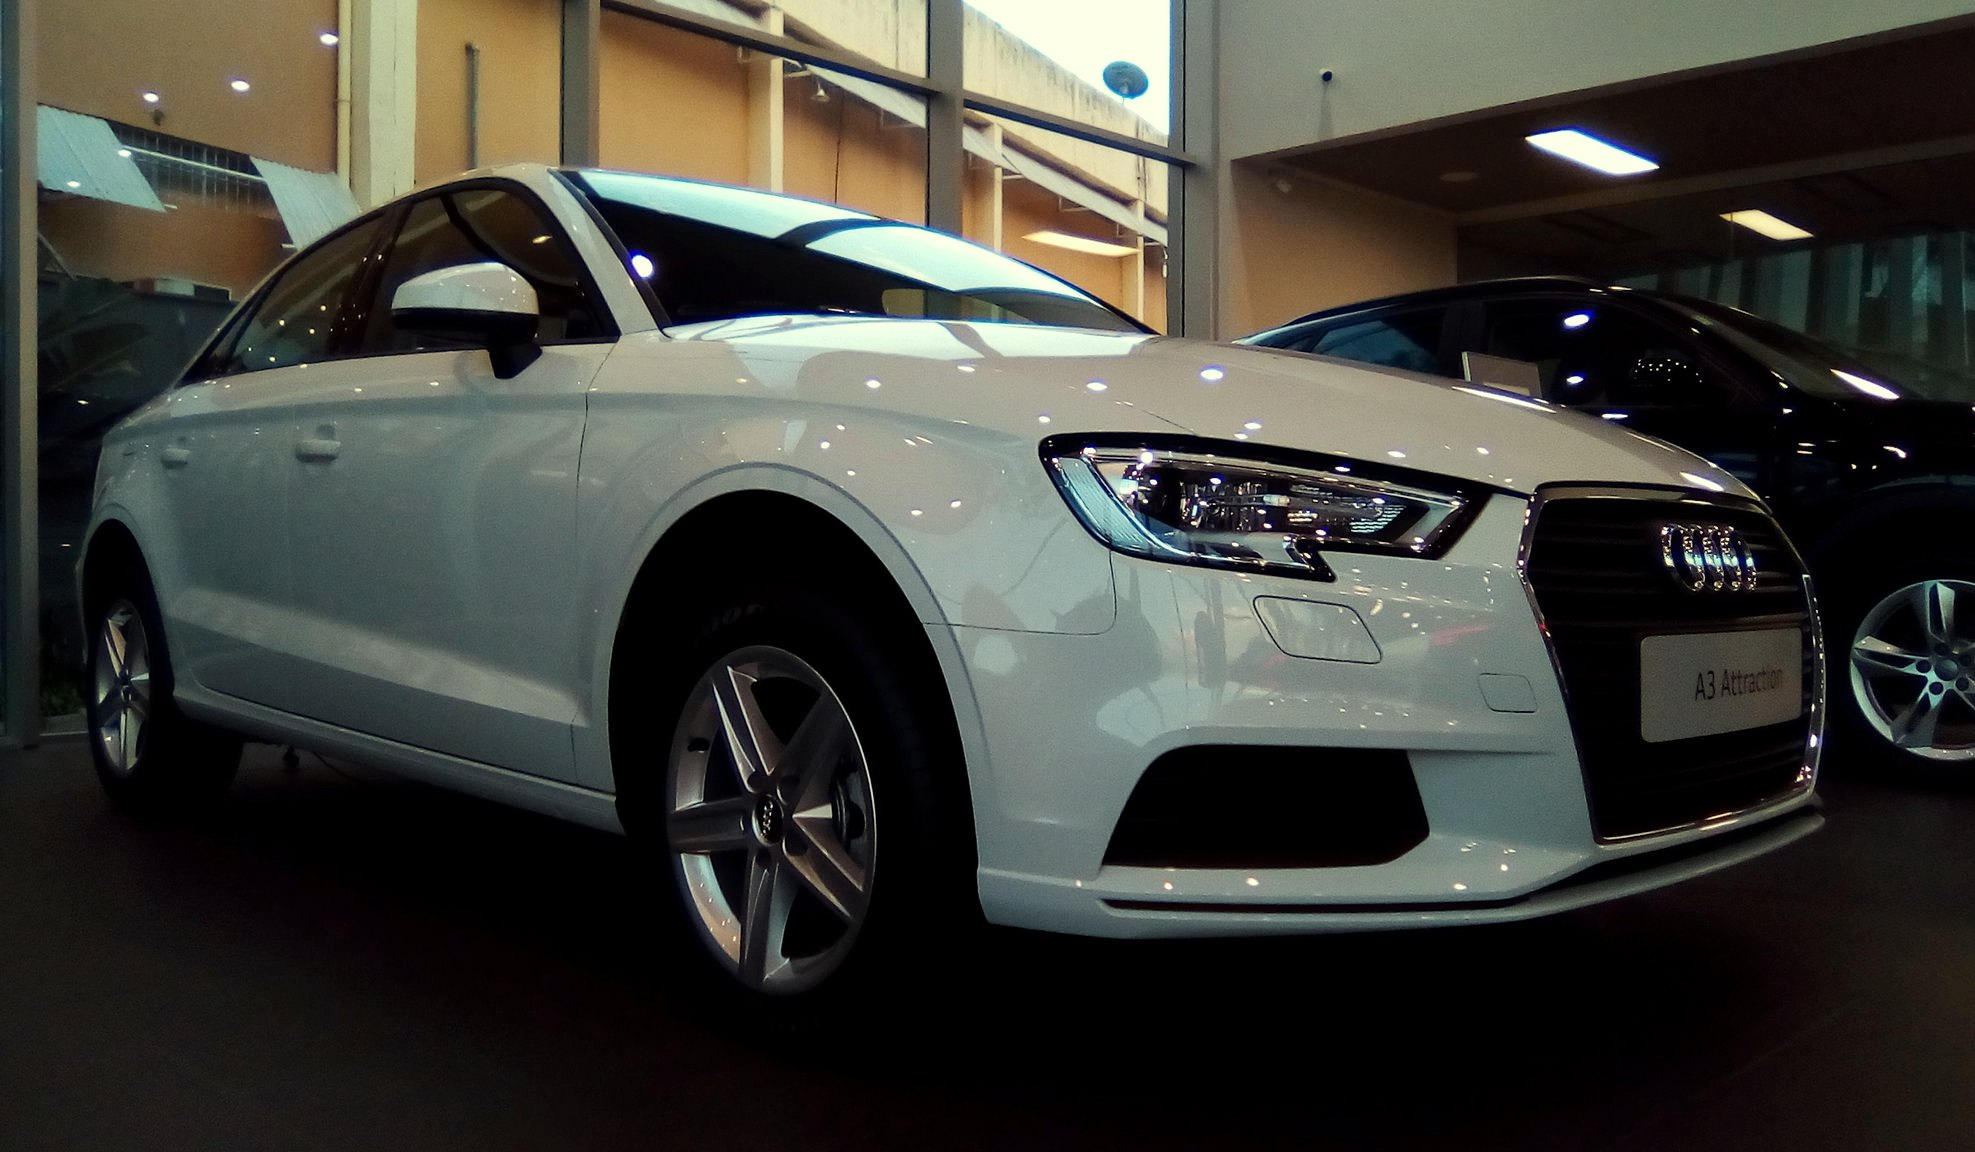 sales audi private pfaff event promotions ttroadster